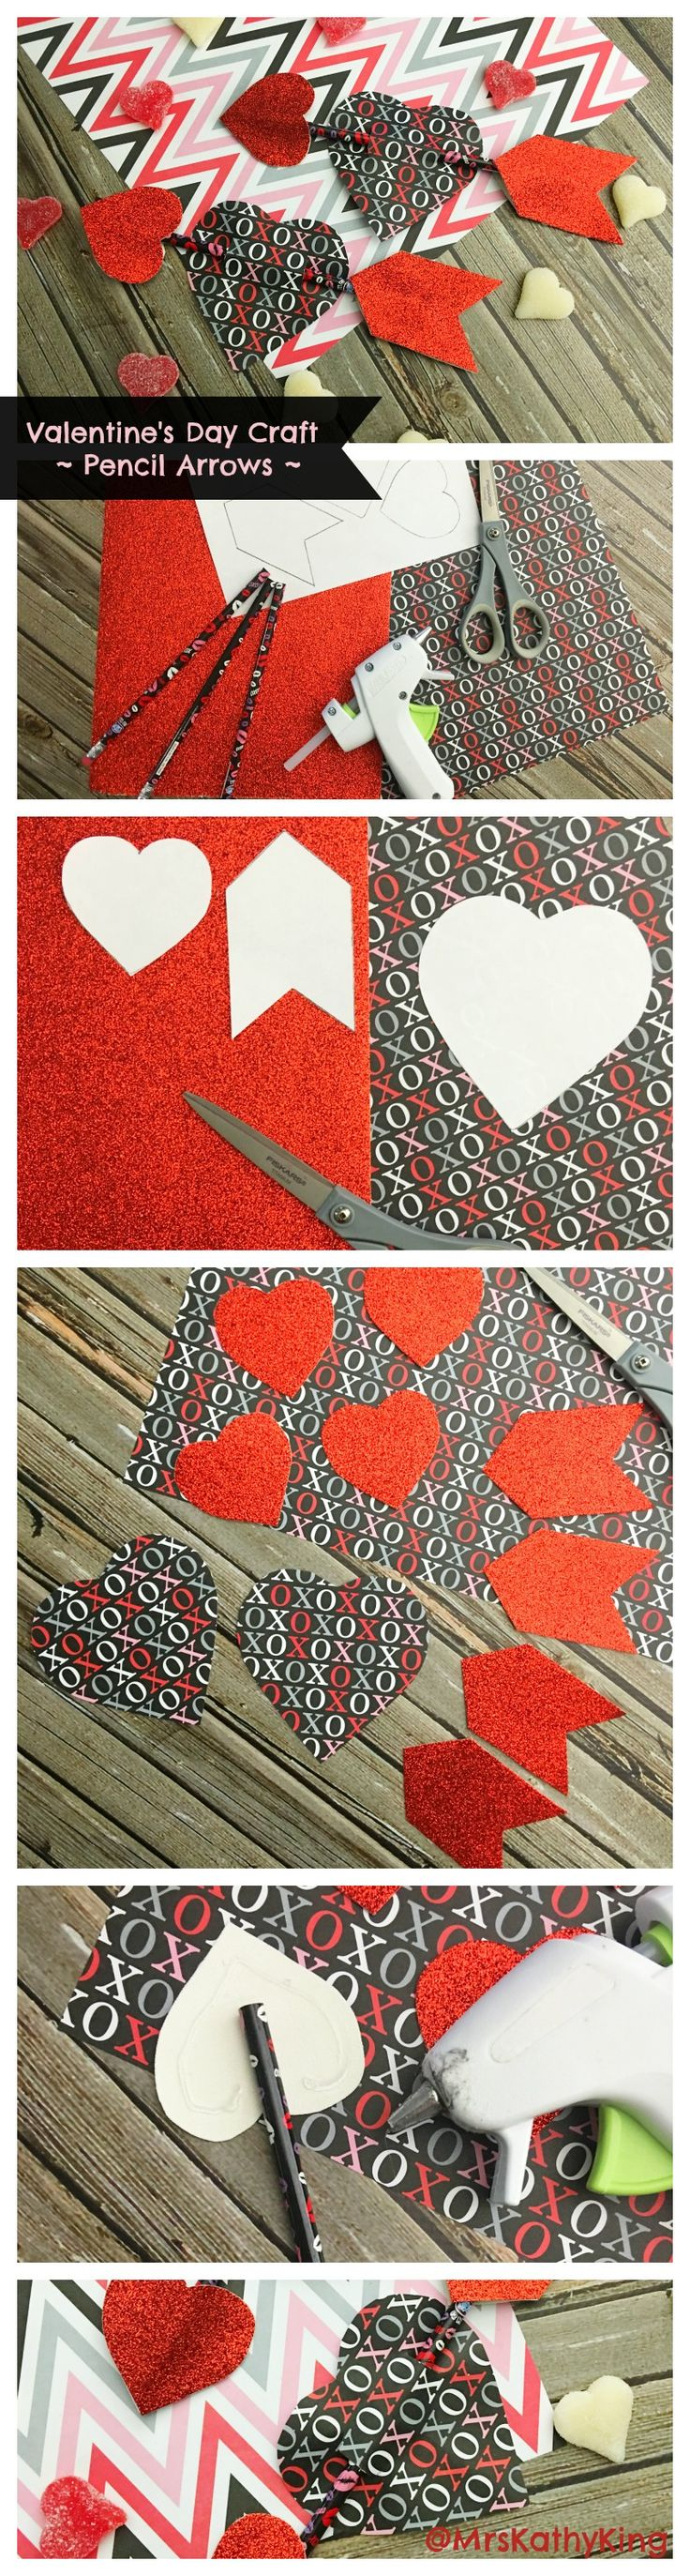 61 best Free Printable Valentines Day Cards Crafts and Recipes